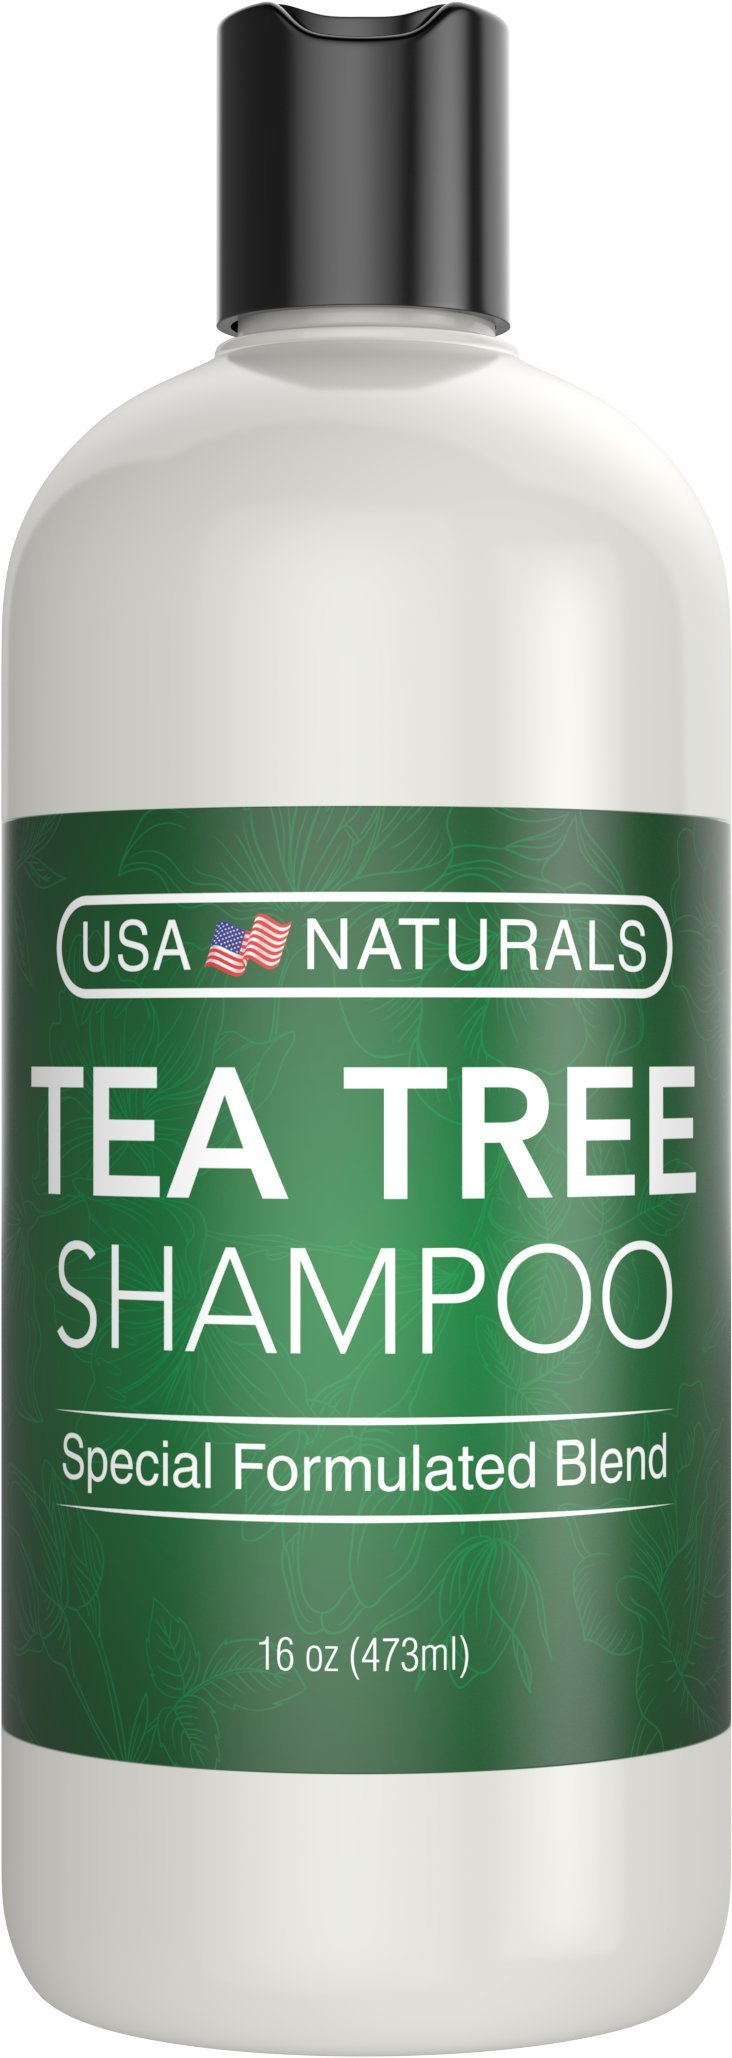 Tea Tree Oil Shampoo Sulfate-Free: Revitalize Hair, Combat Hair Loss and Cleanse Scalp with Naturally-Sourced Ingredients - Pure Tea Tree Oil, Organic Argan Oil, Organic Green Tea (Tea Tree Shampoo) by USA Naturals (Image #8)